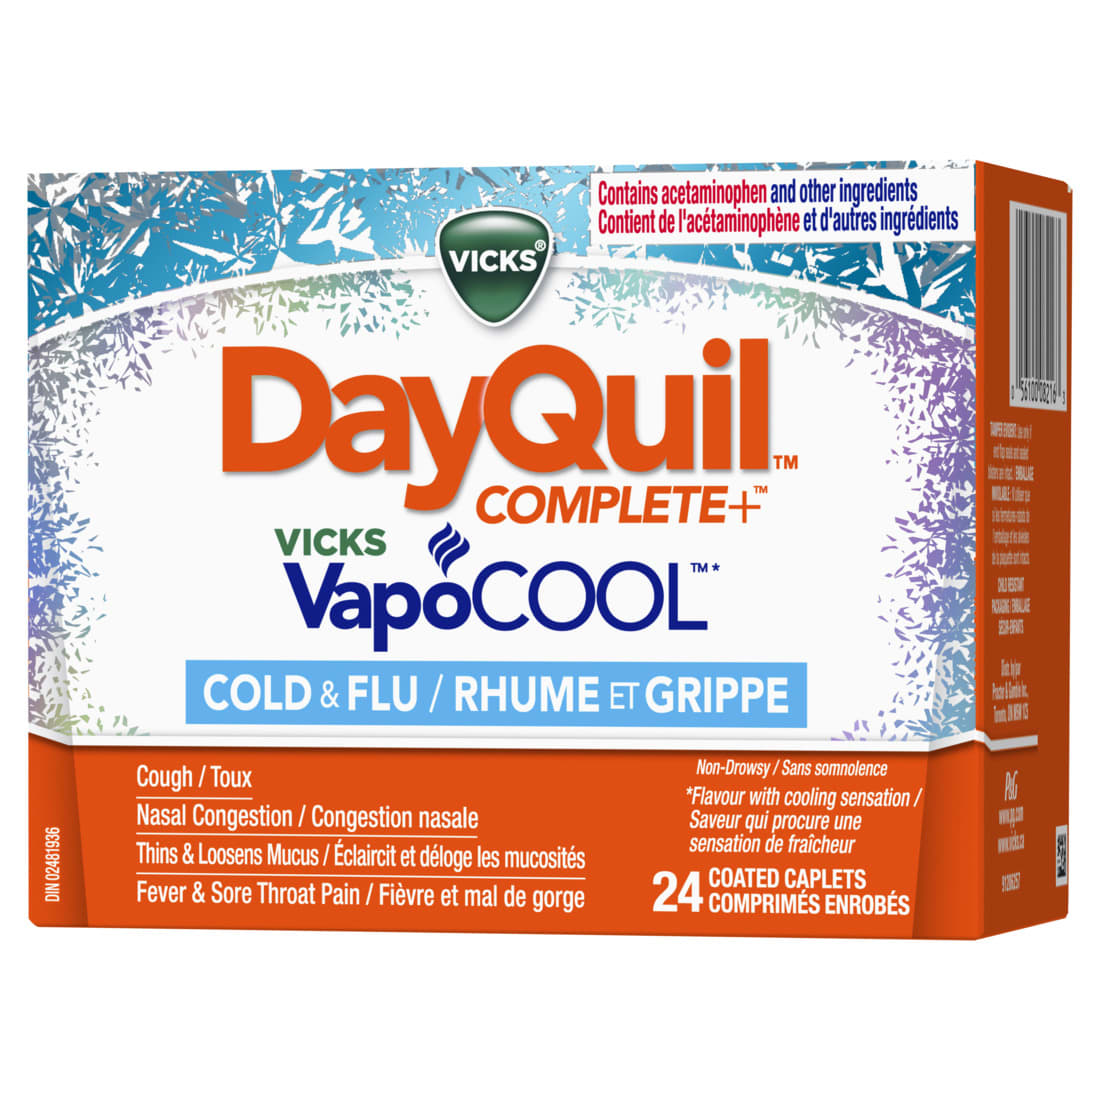 dayquil-complete-vicks-vapocool-tm-daytime-cough-cold-and-flu-relief-liquid-side